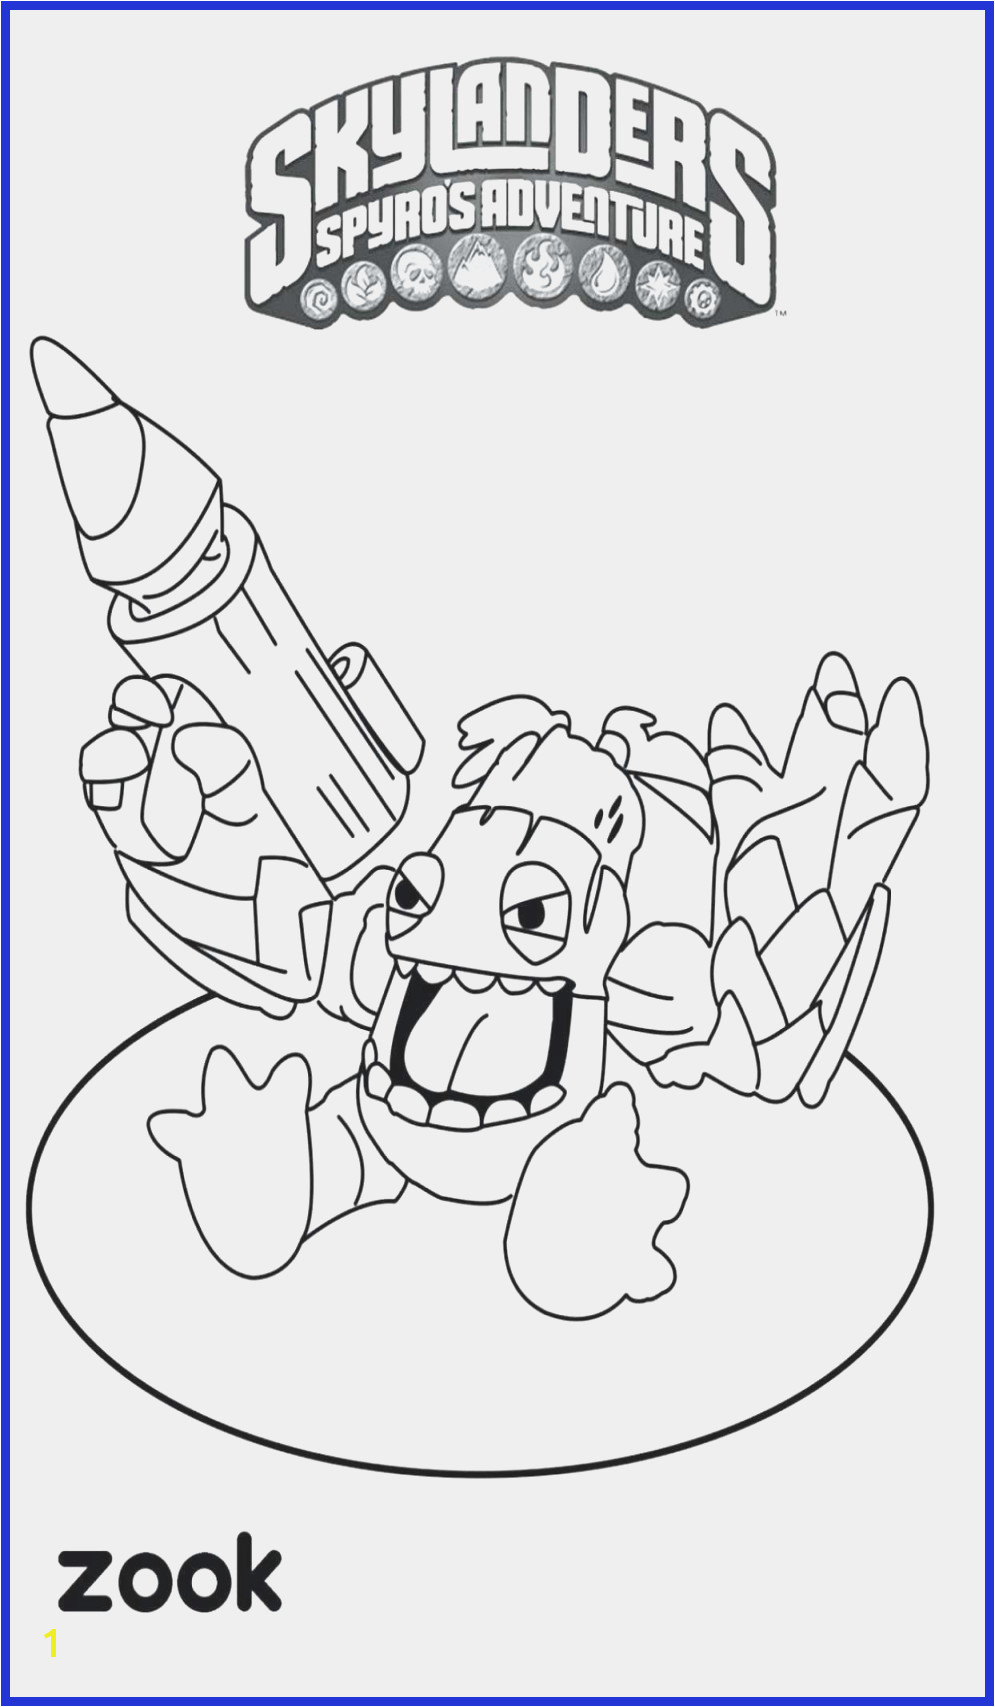 Looney Tunes Thanksgiving Coloring Pages Gallery Looney Tunes Printable Coloring Pages – Coloring World